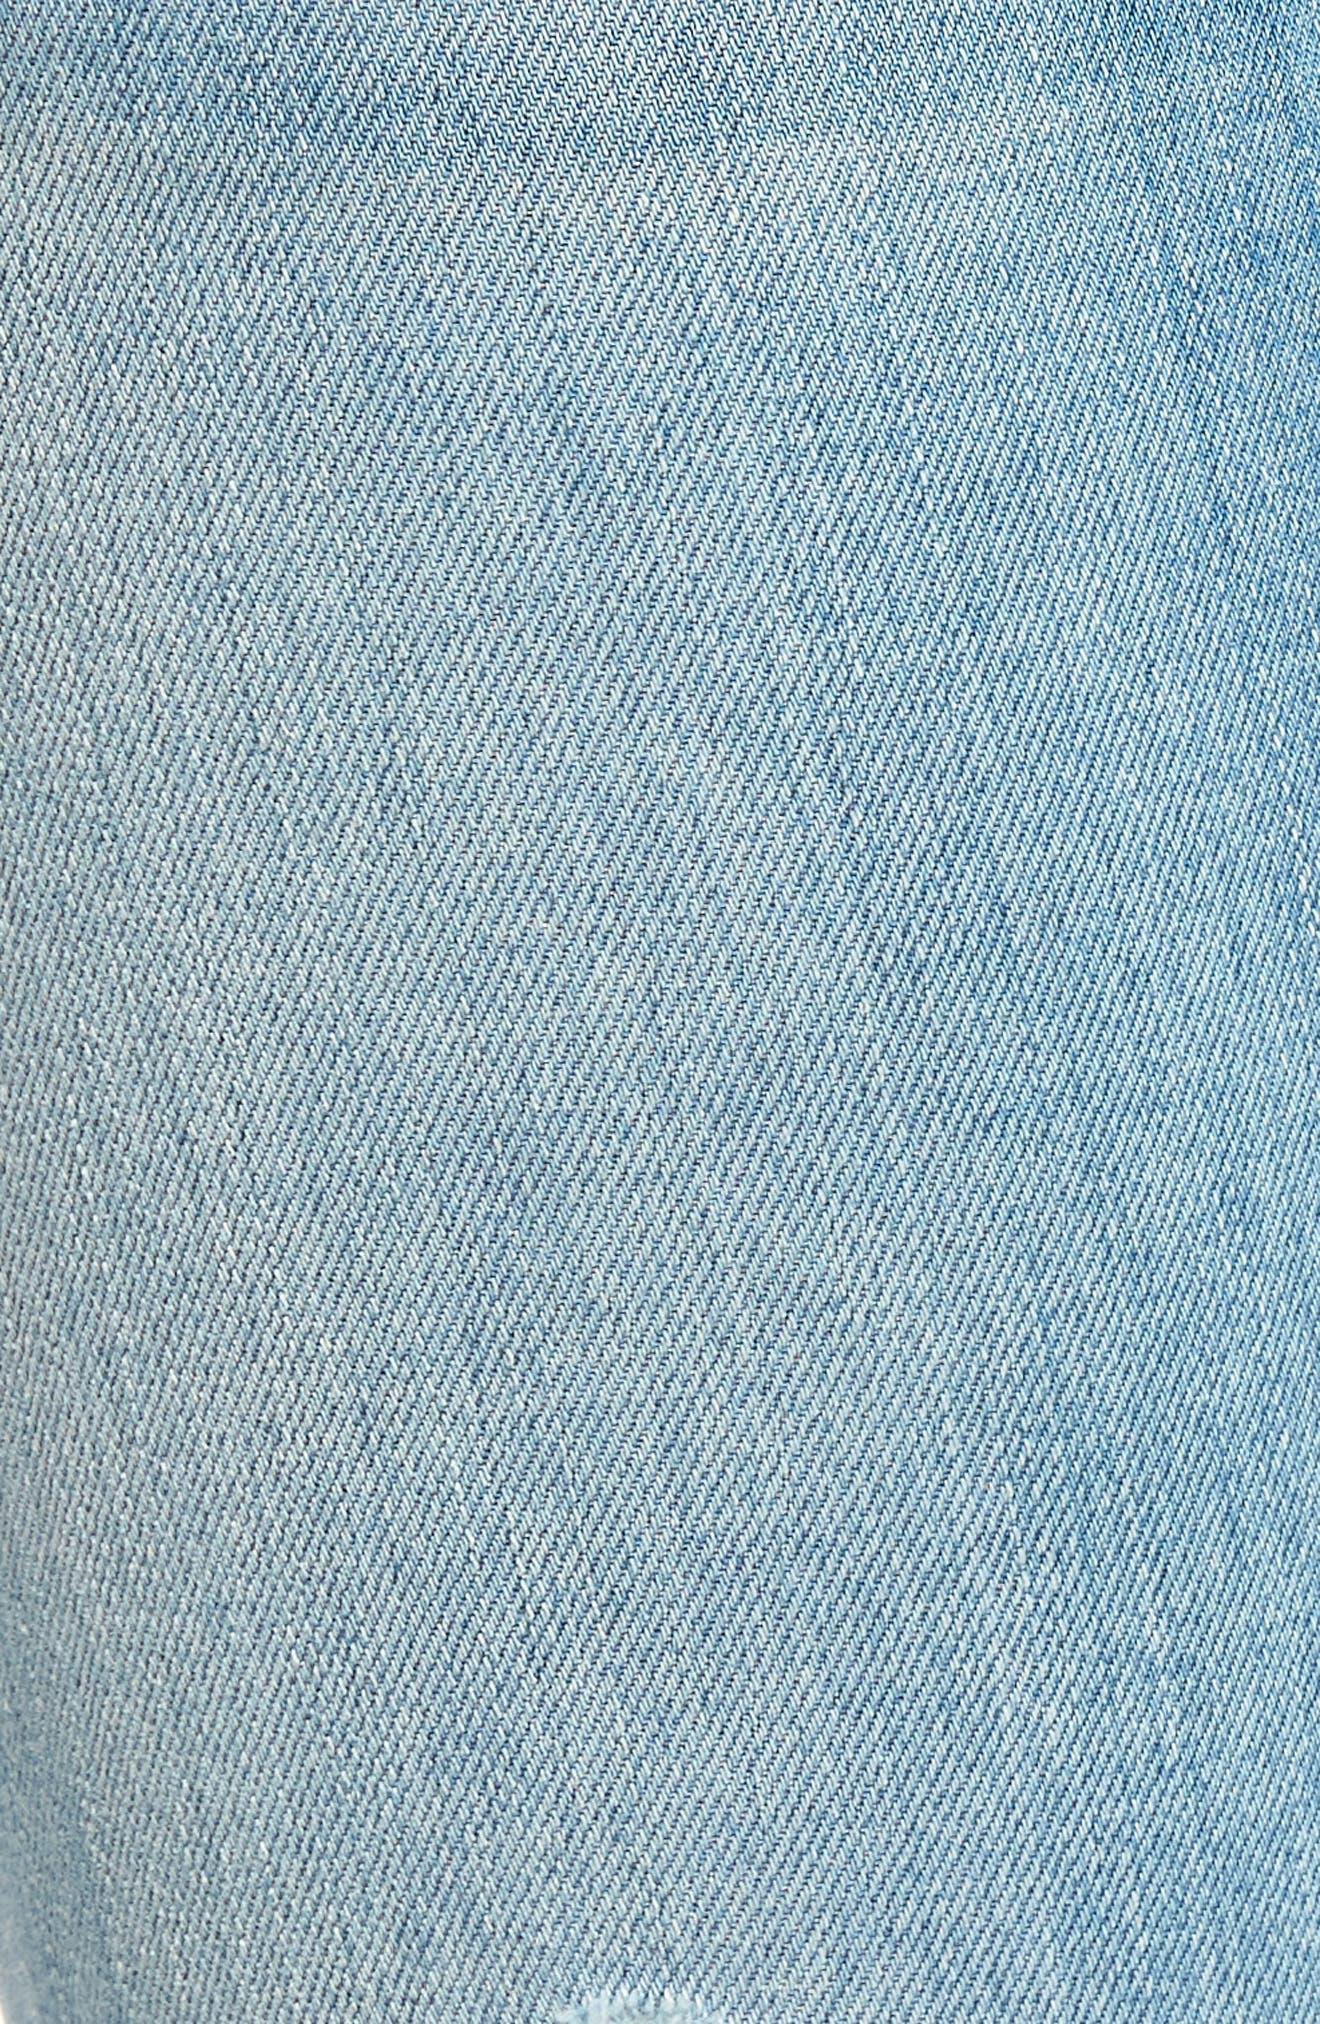 Tally Crop Skinny Jeans,                             Alternate thumbnail 6, color,                             Sugarcoat